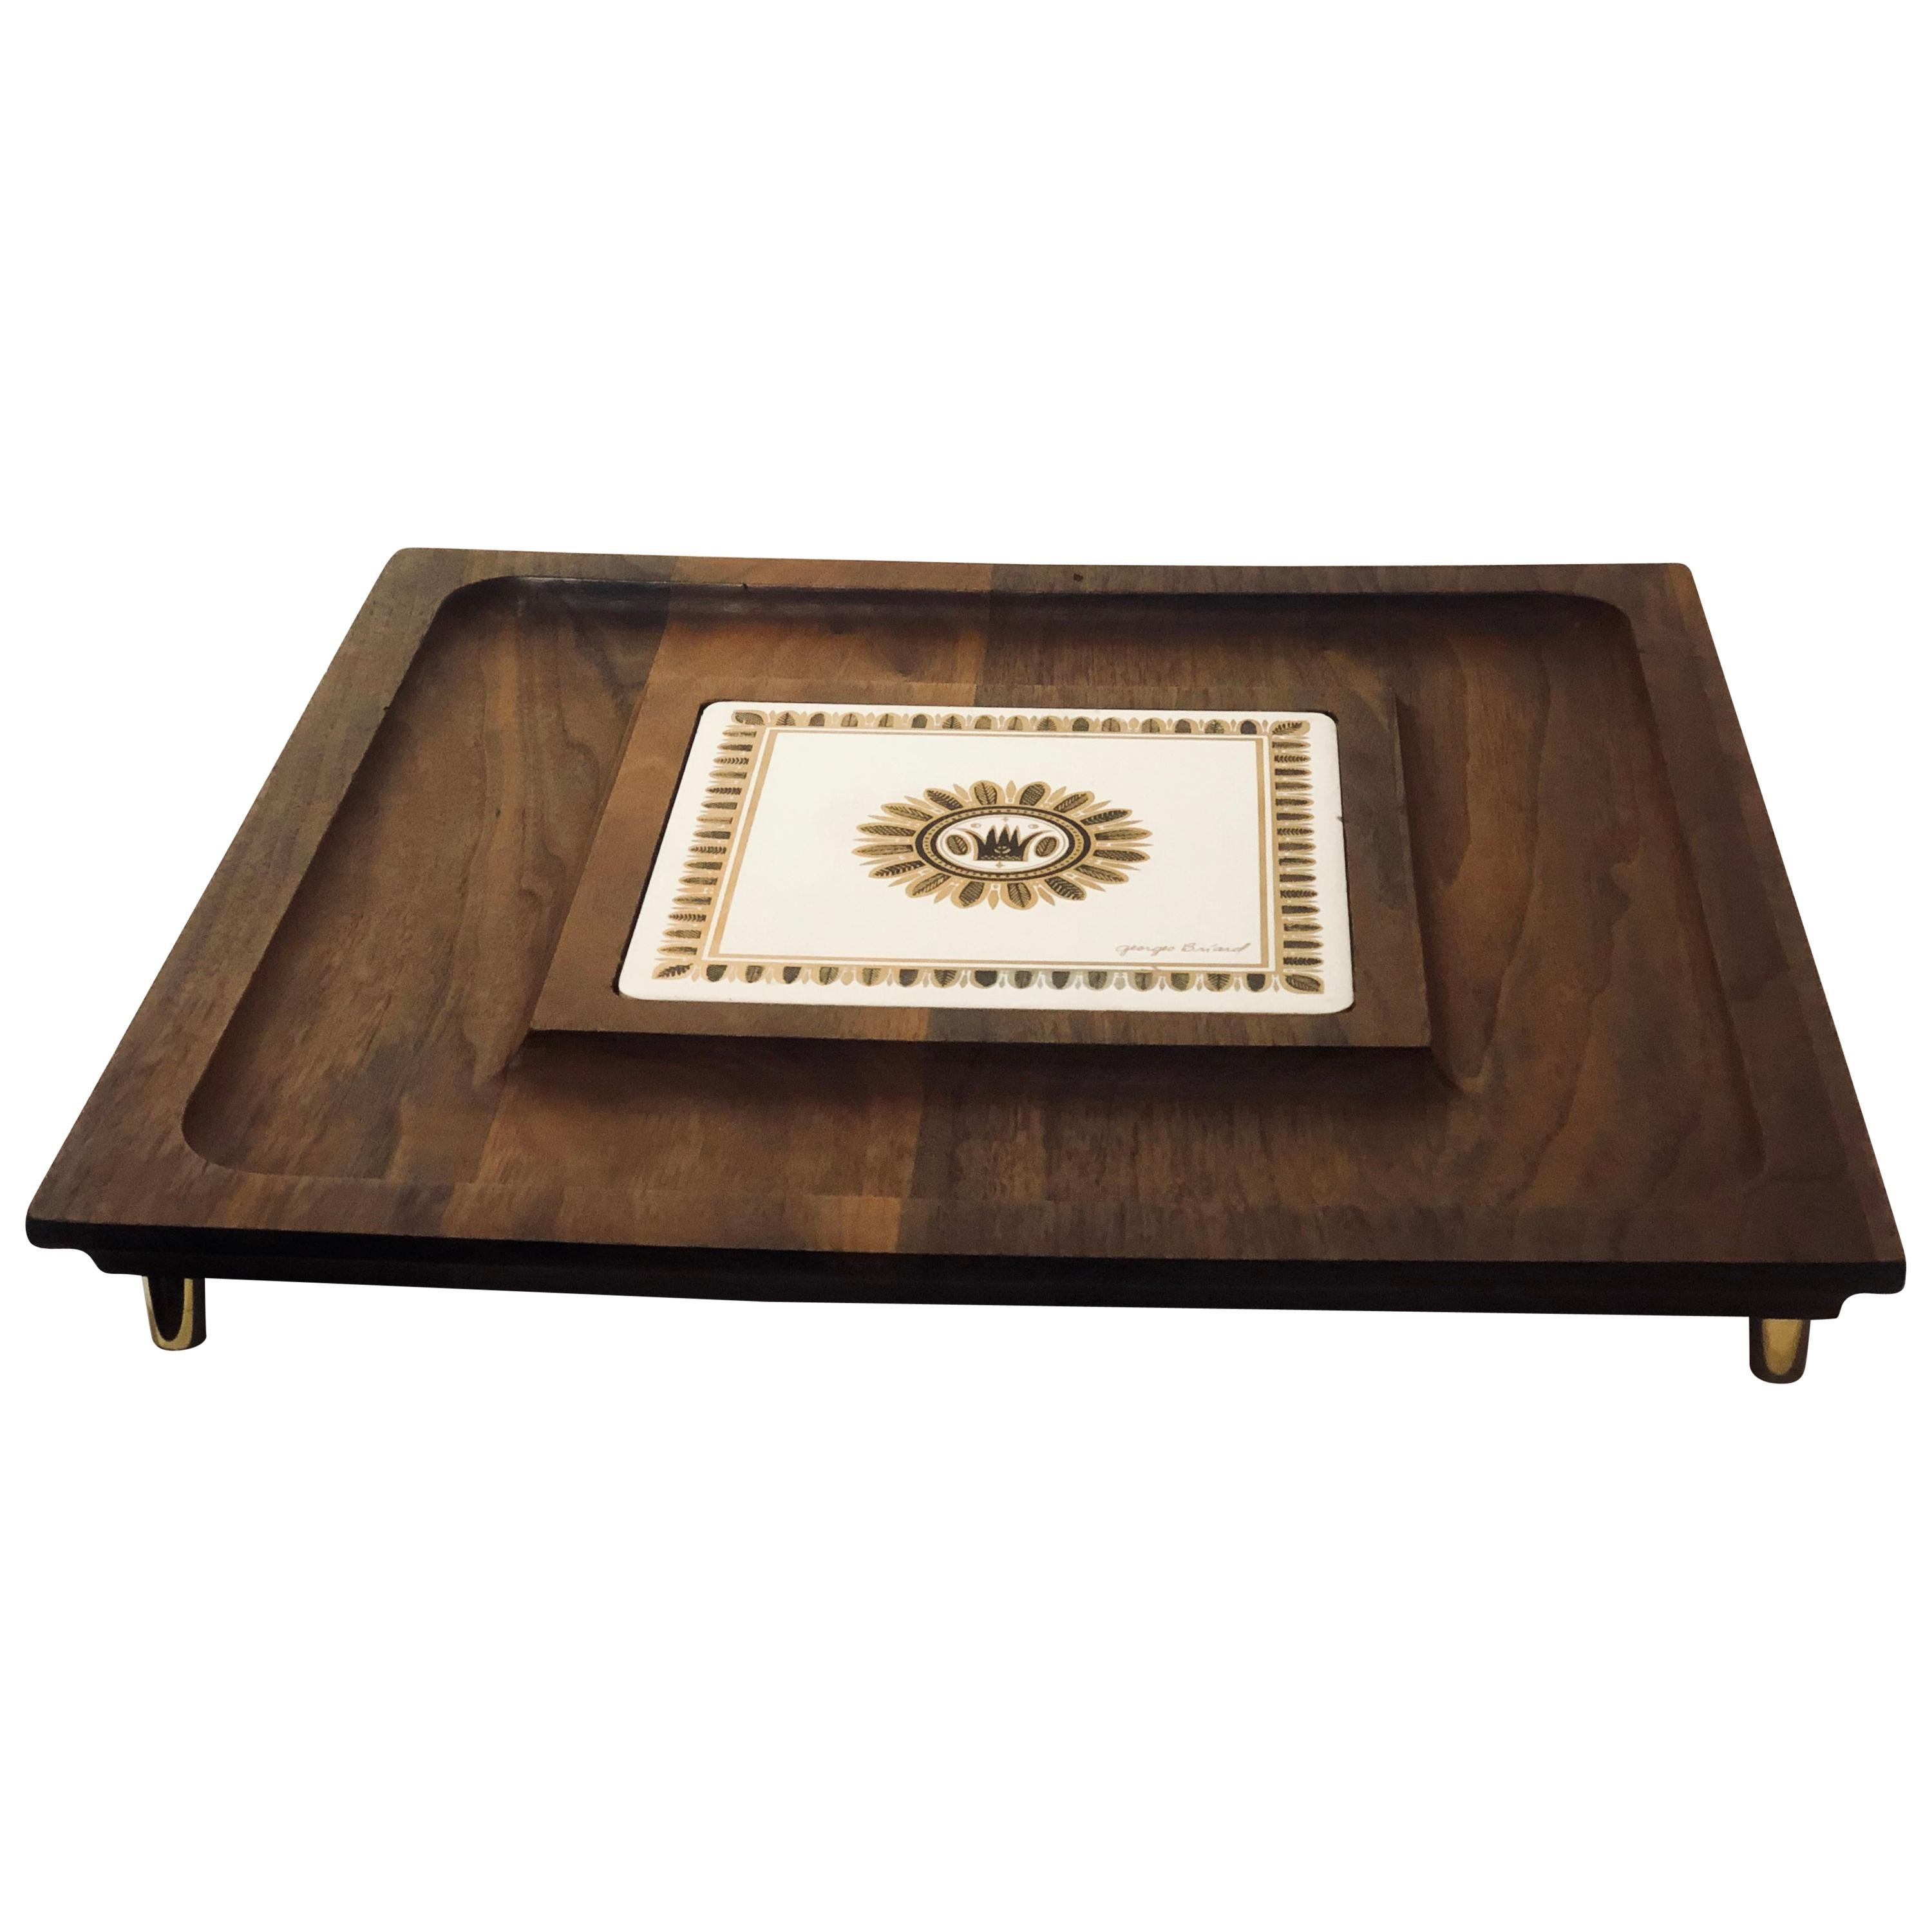 1950s American Midcentury Serving Tray by Georges Briard Signed